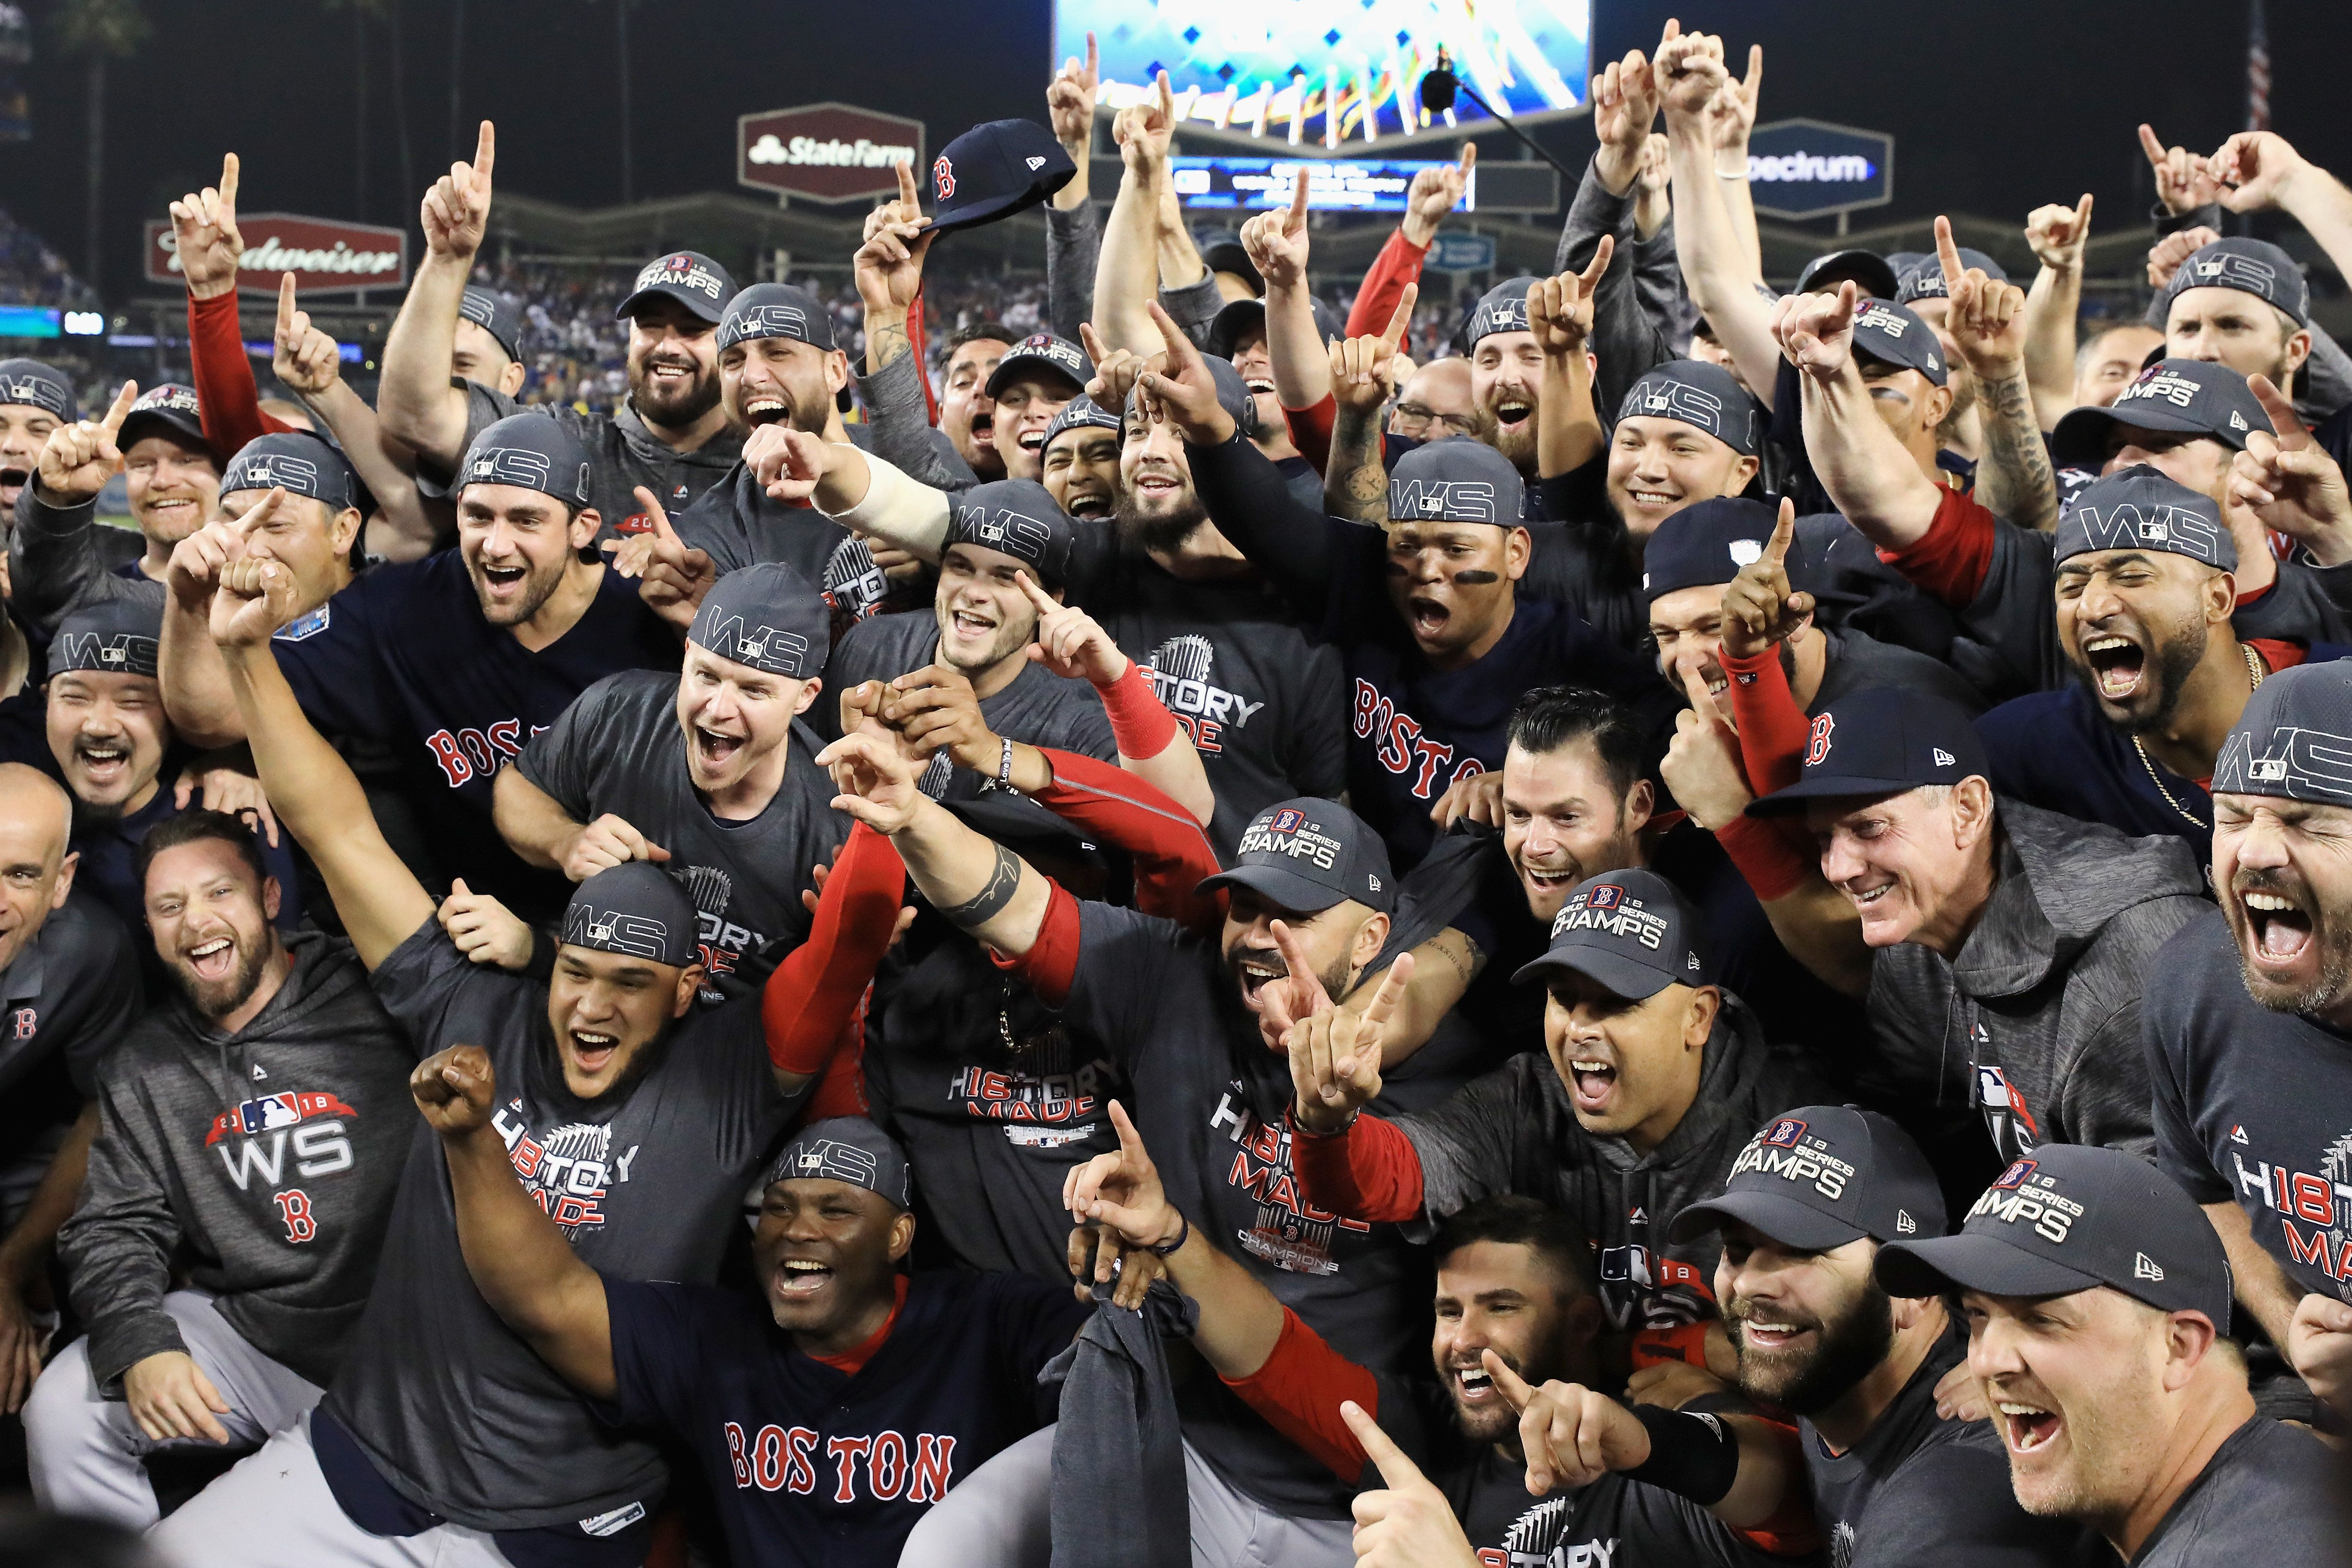 LOS ANGELES, CA - OCTOBER 28:  The Boston Red Sox celebrate their 5-1 win over the Los Angeles Dodgers in Game Five to win the 2018 World Series at Dodger Stadium on October 28, 2018 in Los Angeles, California.  (Photo by Sean M. Haffey/Getty Images)